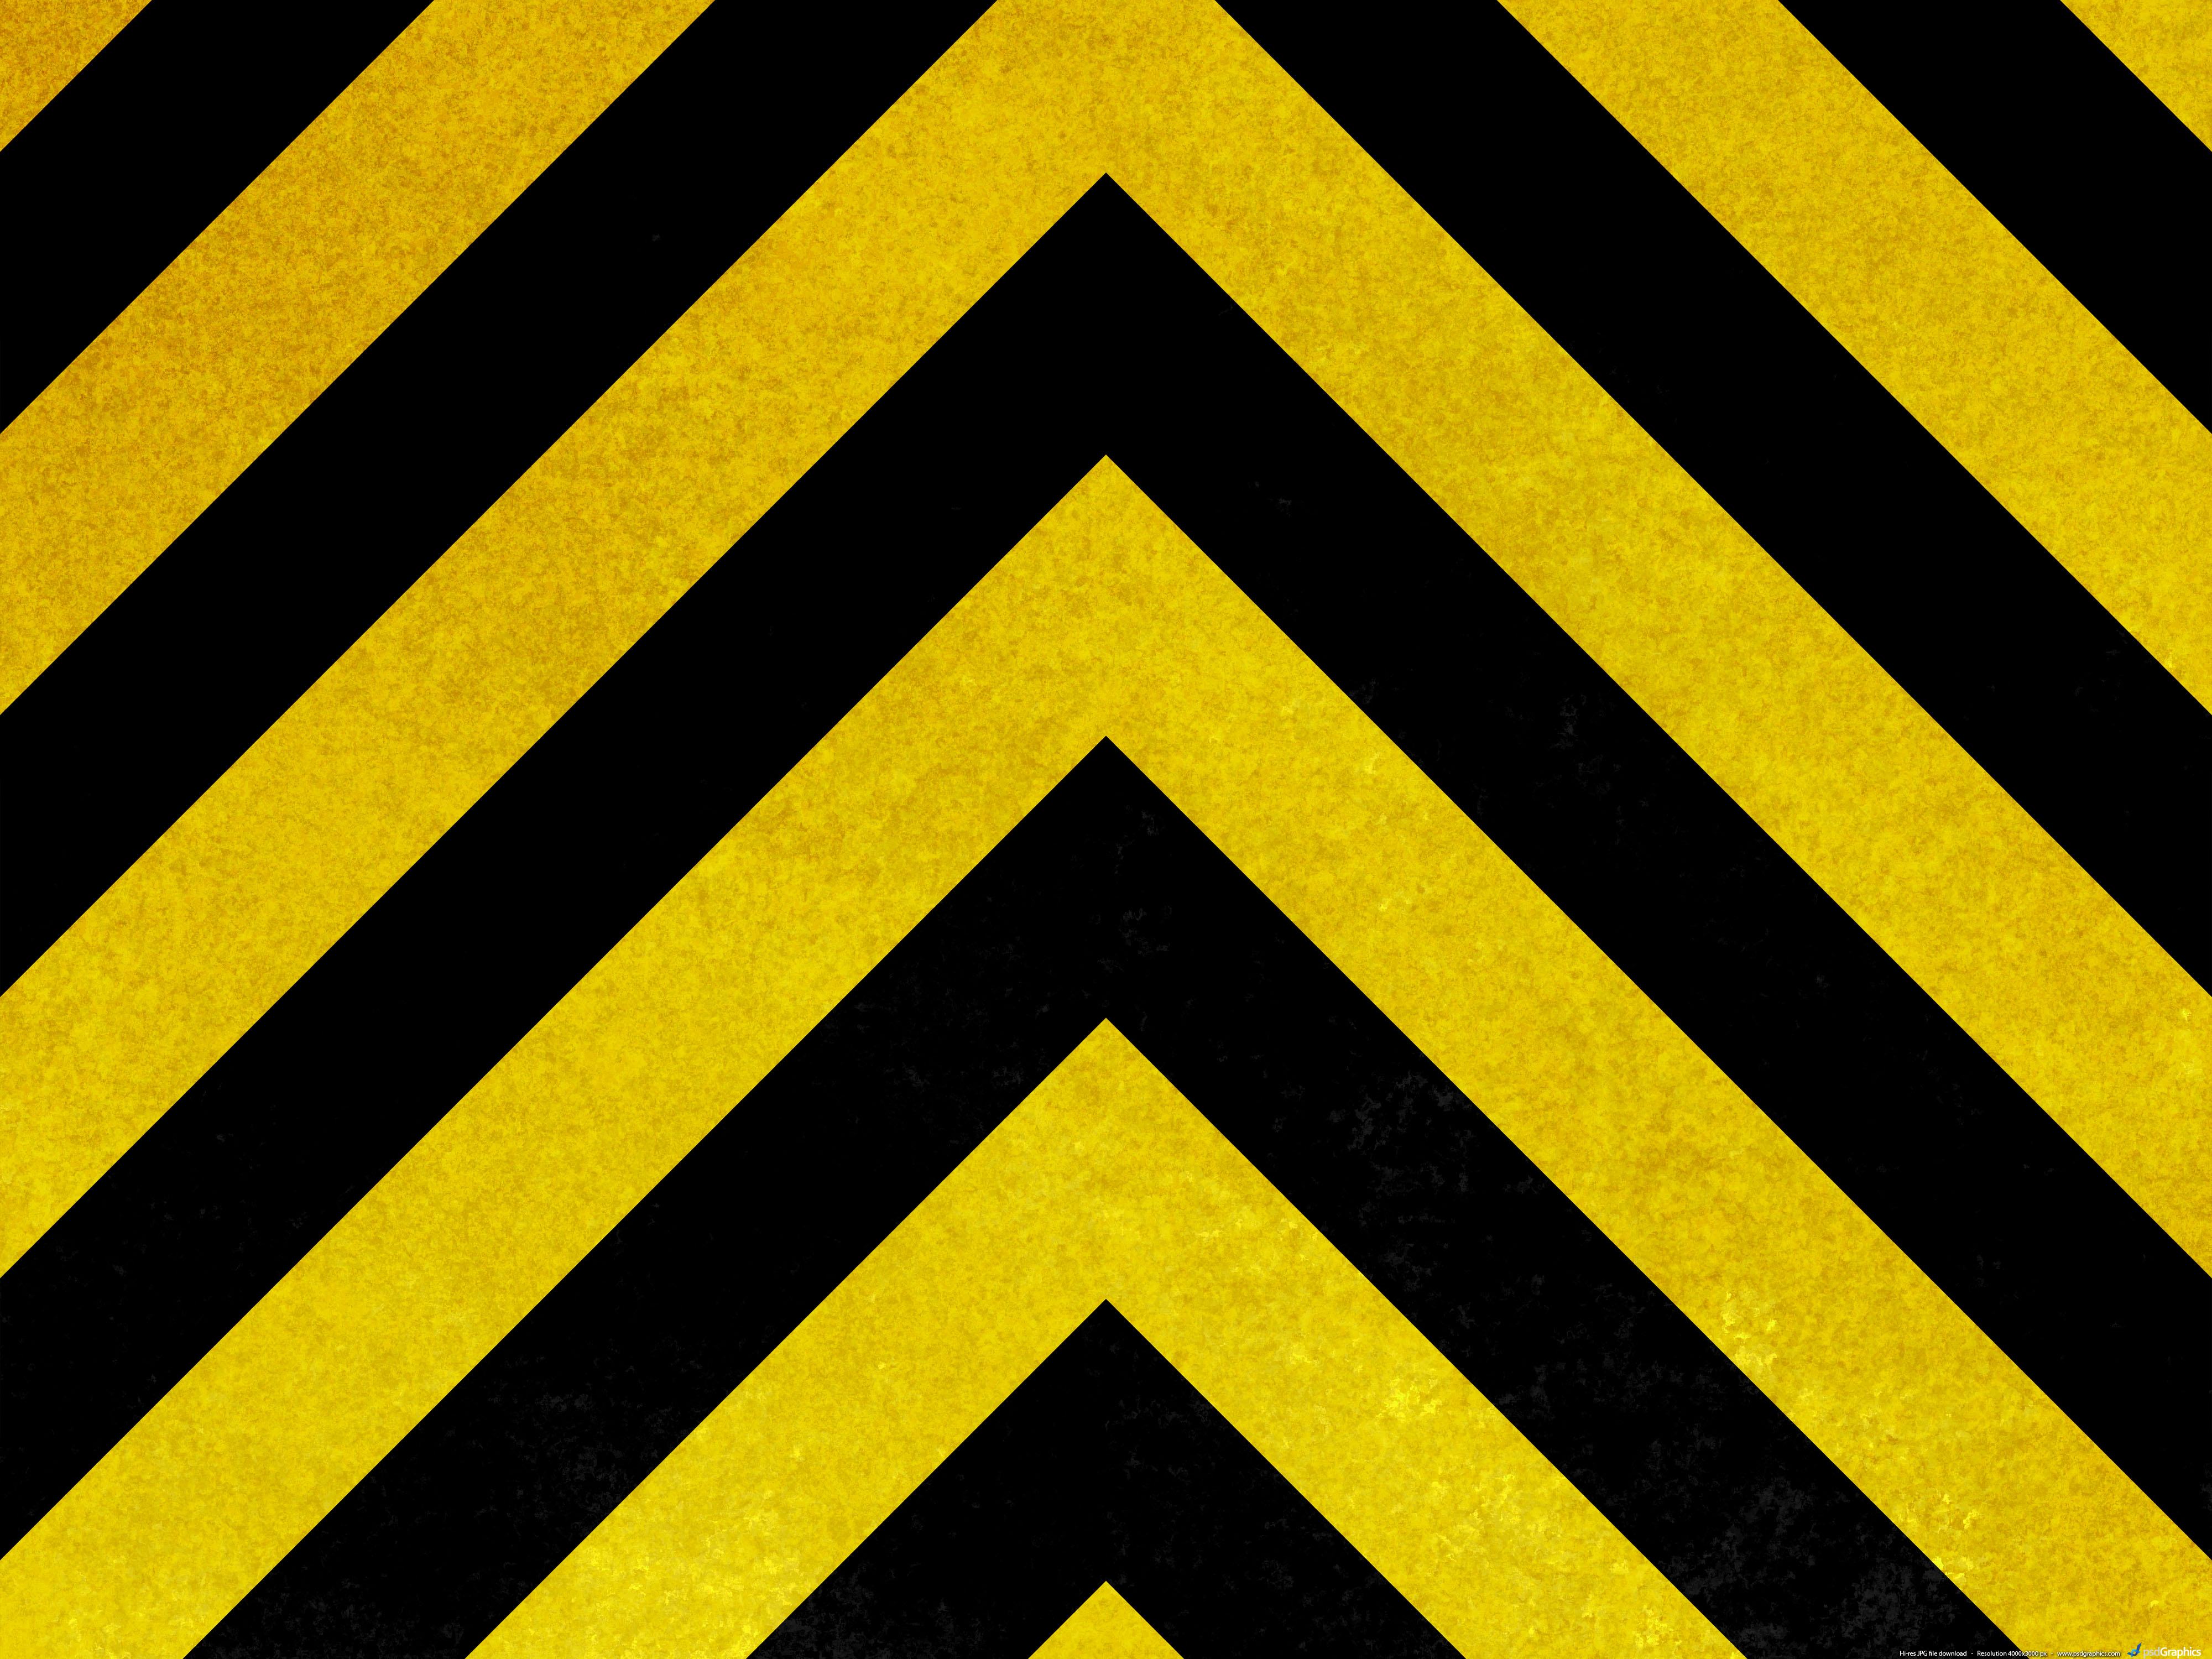 Stock Image Enter Your Own Risk Yellow Caution Tape Illustration Design Image32953241 moreover Grunge Construction Background besides Yellow Hazard Stripes Texture together with 201273405677 as well Caution Tape Border. on caution tape texture